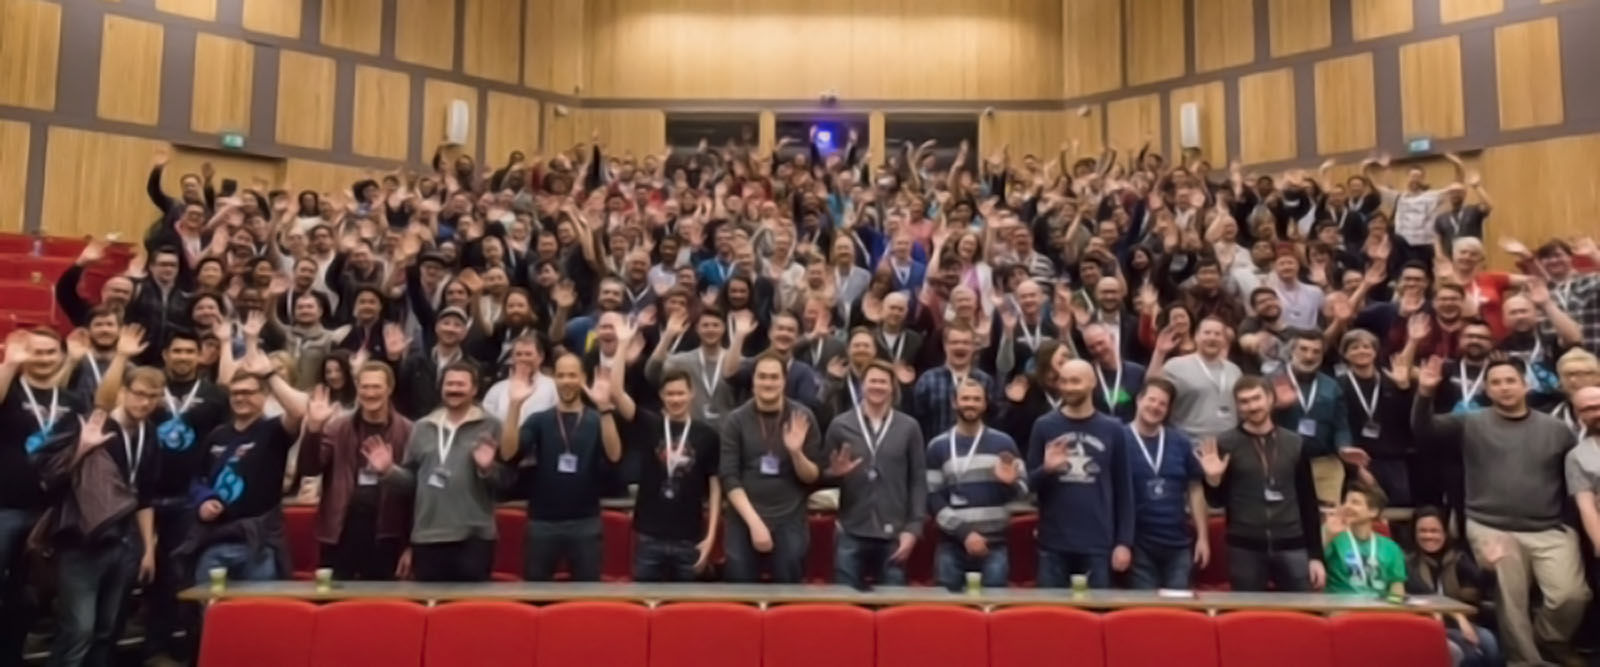 The attendees of DrupalCamp London 2016.